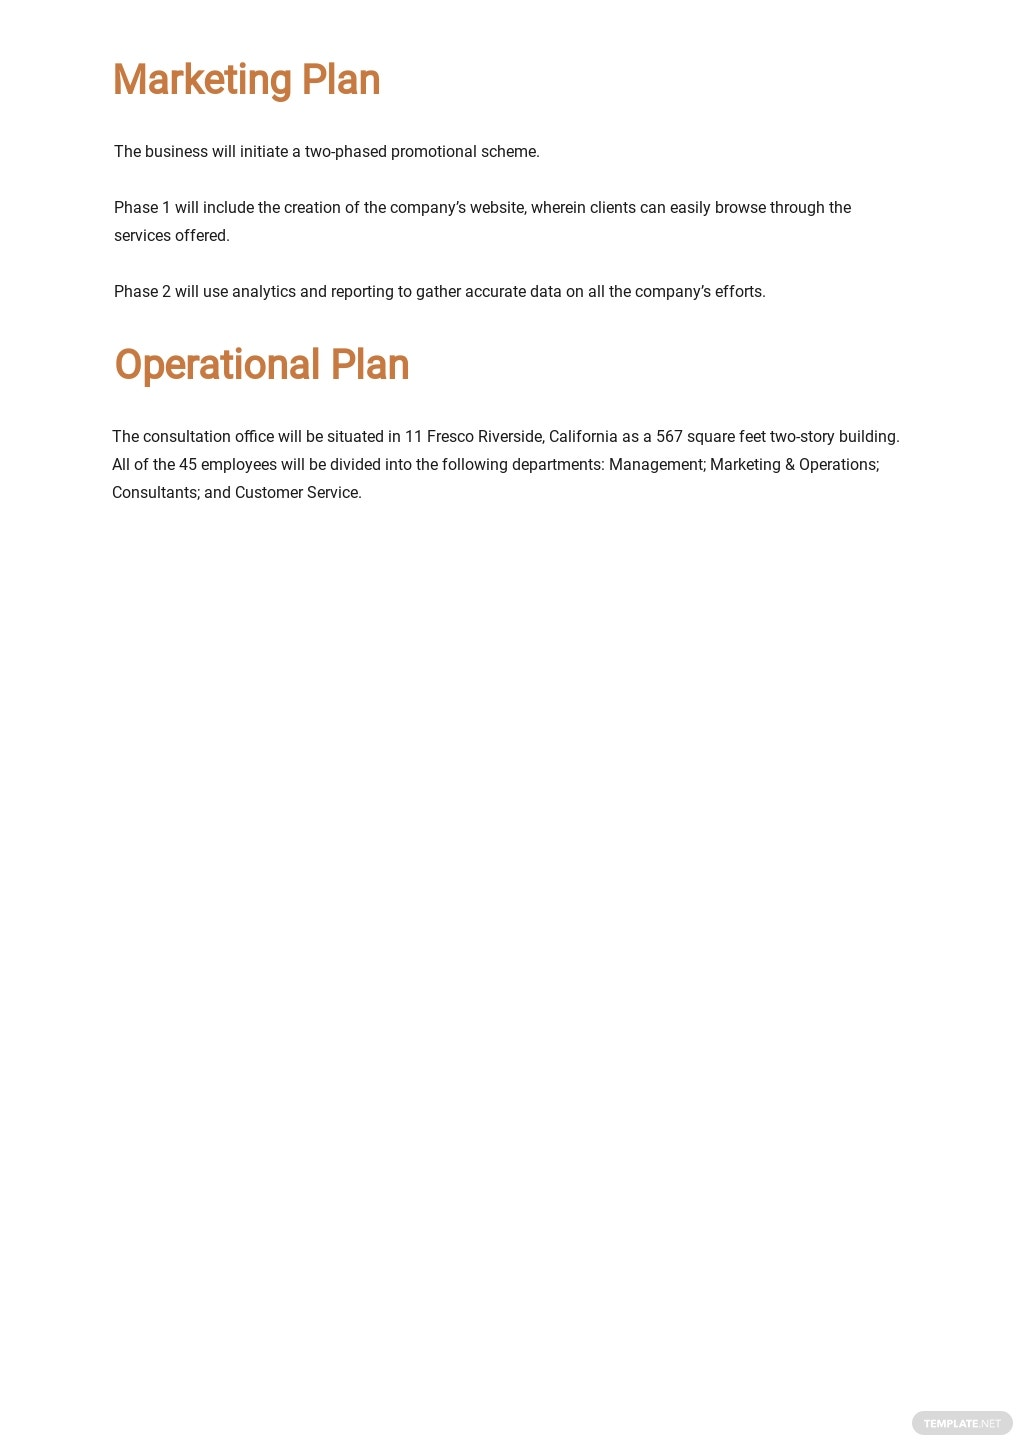 Advertising Consulting Business Plan Template 4.jpe